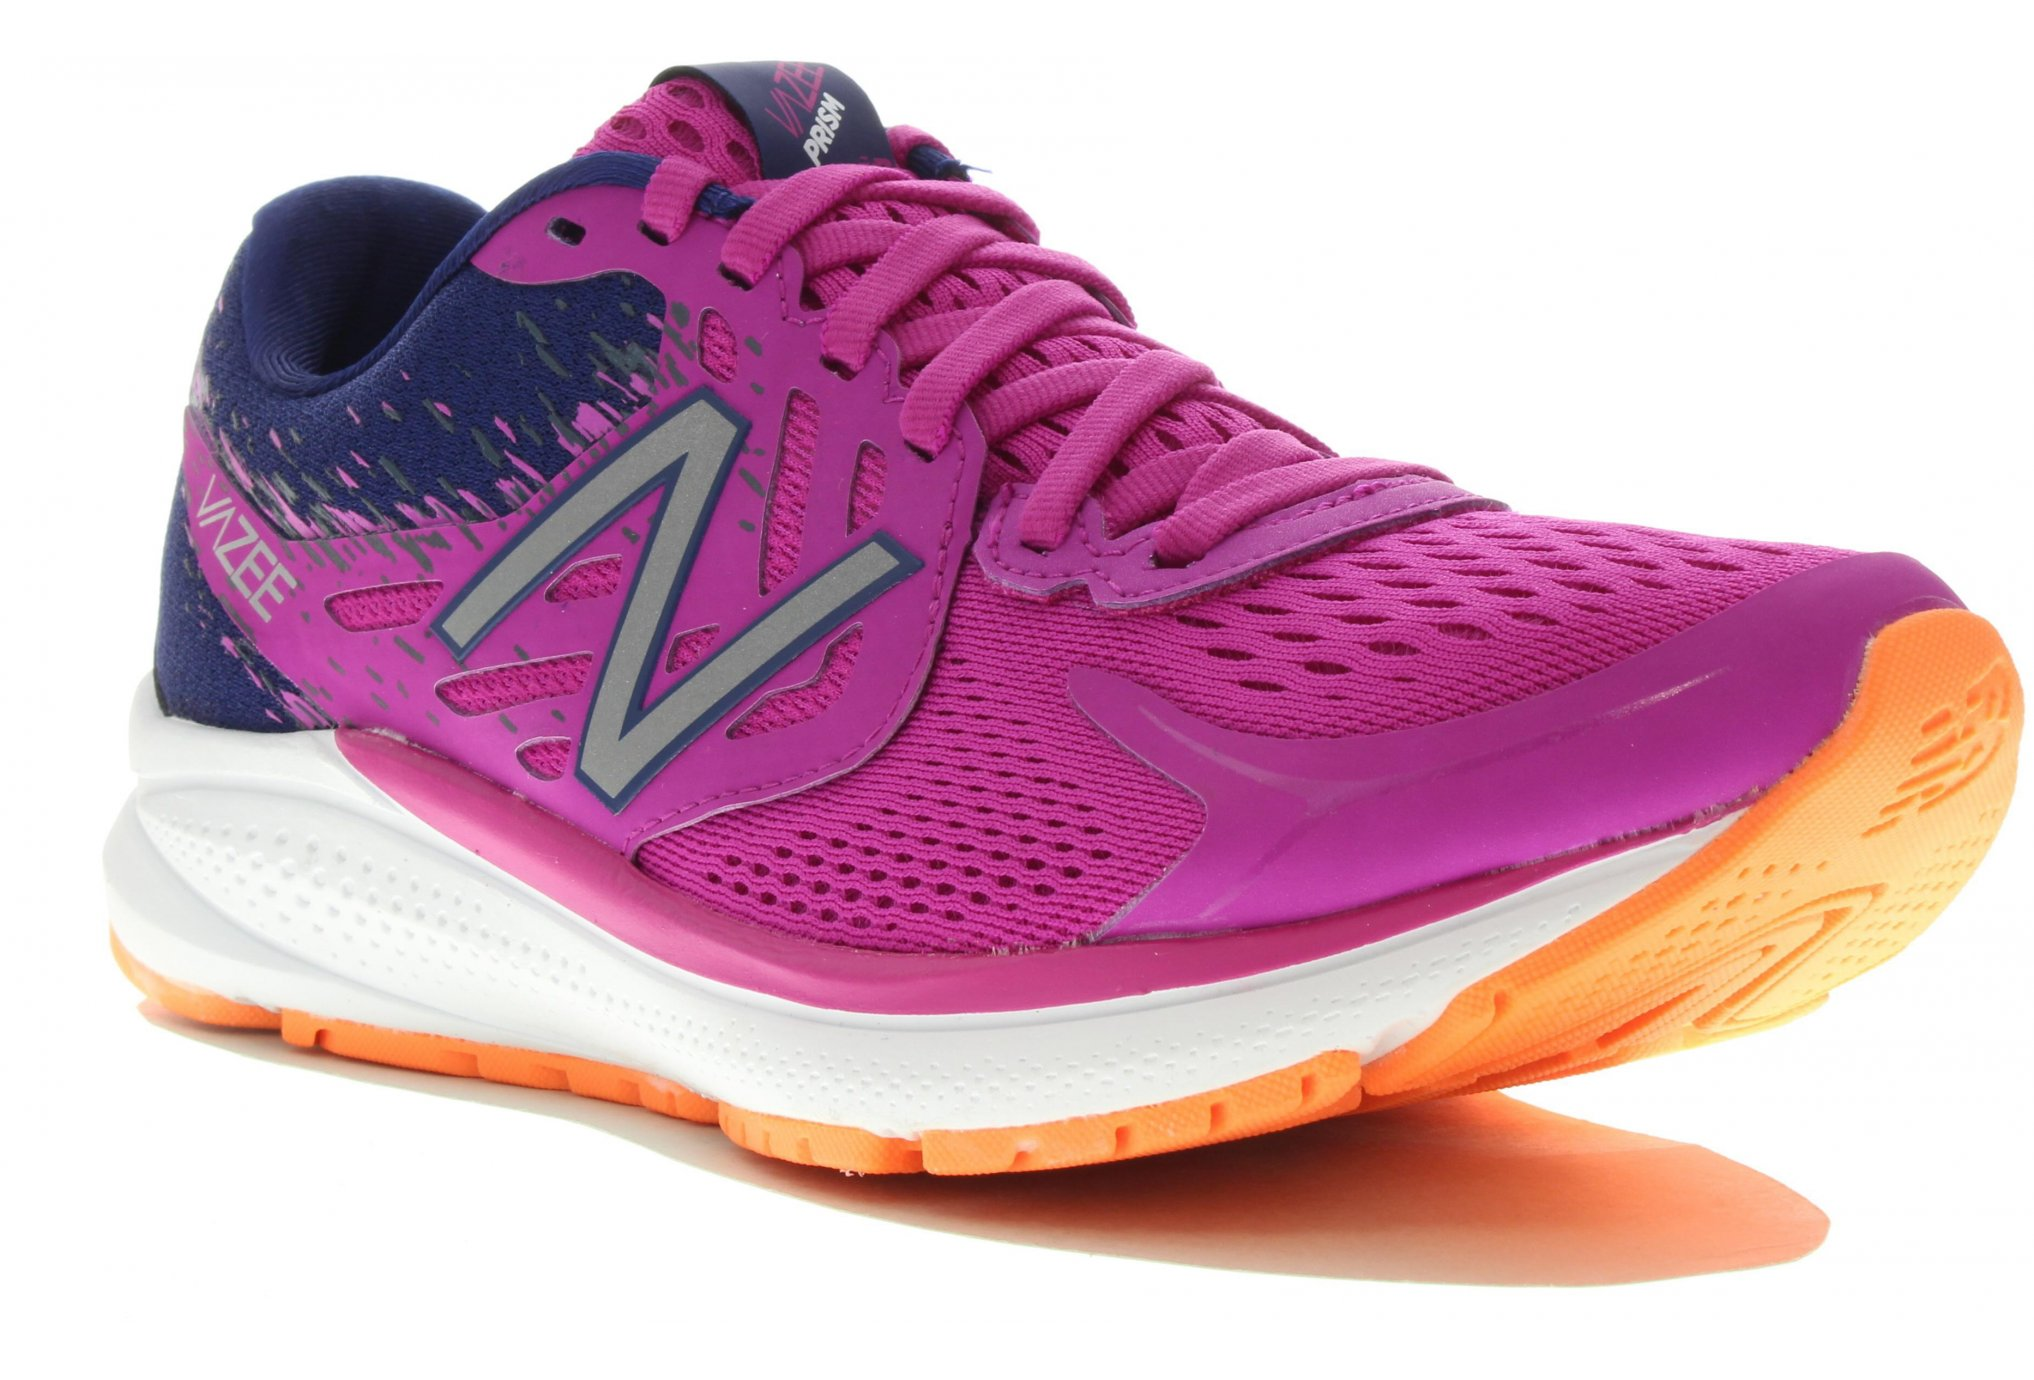 New Balance Vazee Prism v2 W Chaussures running femme